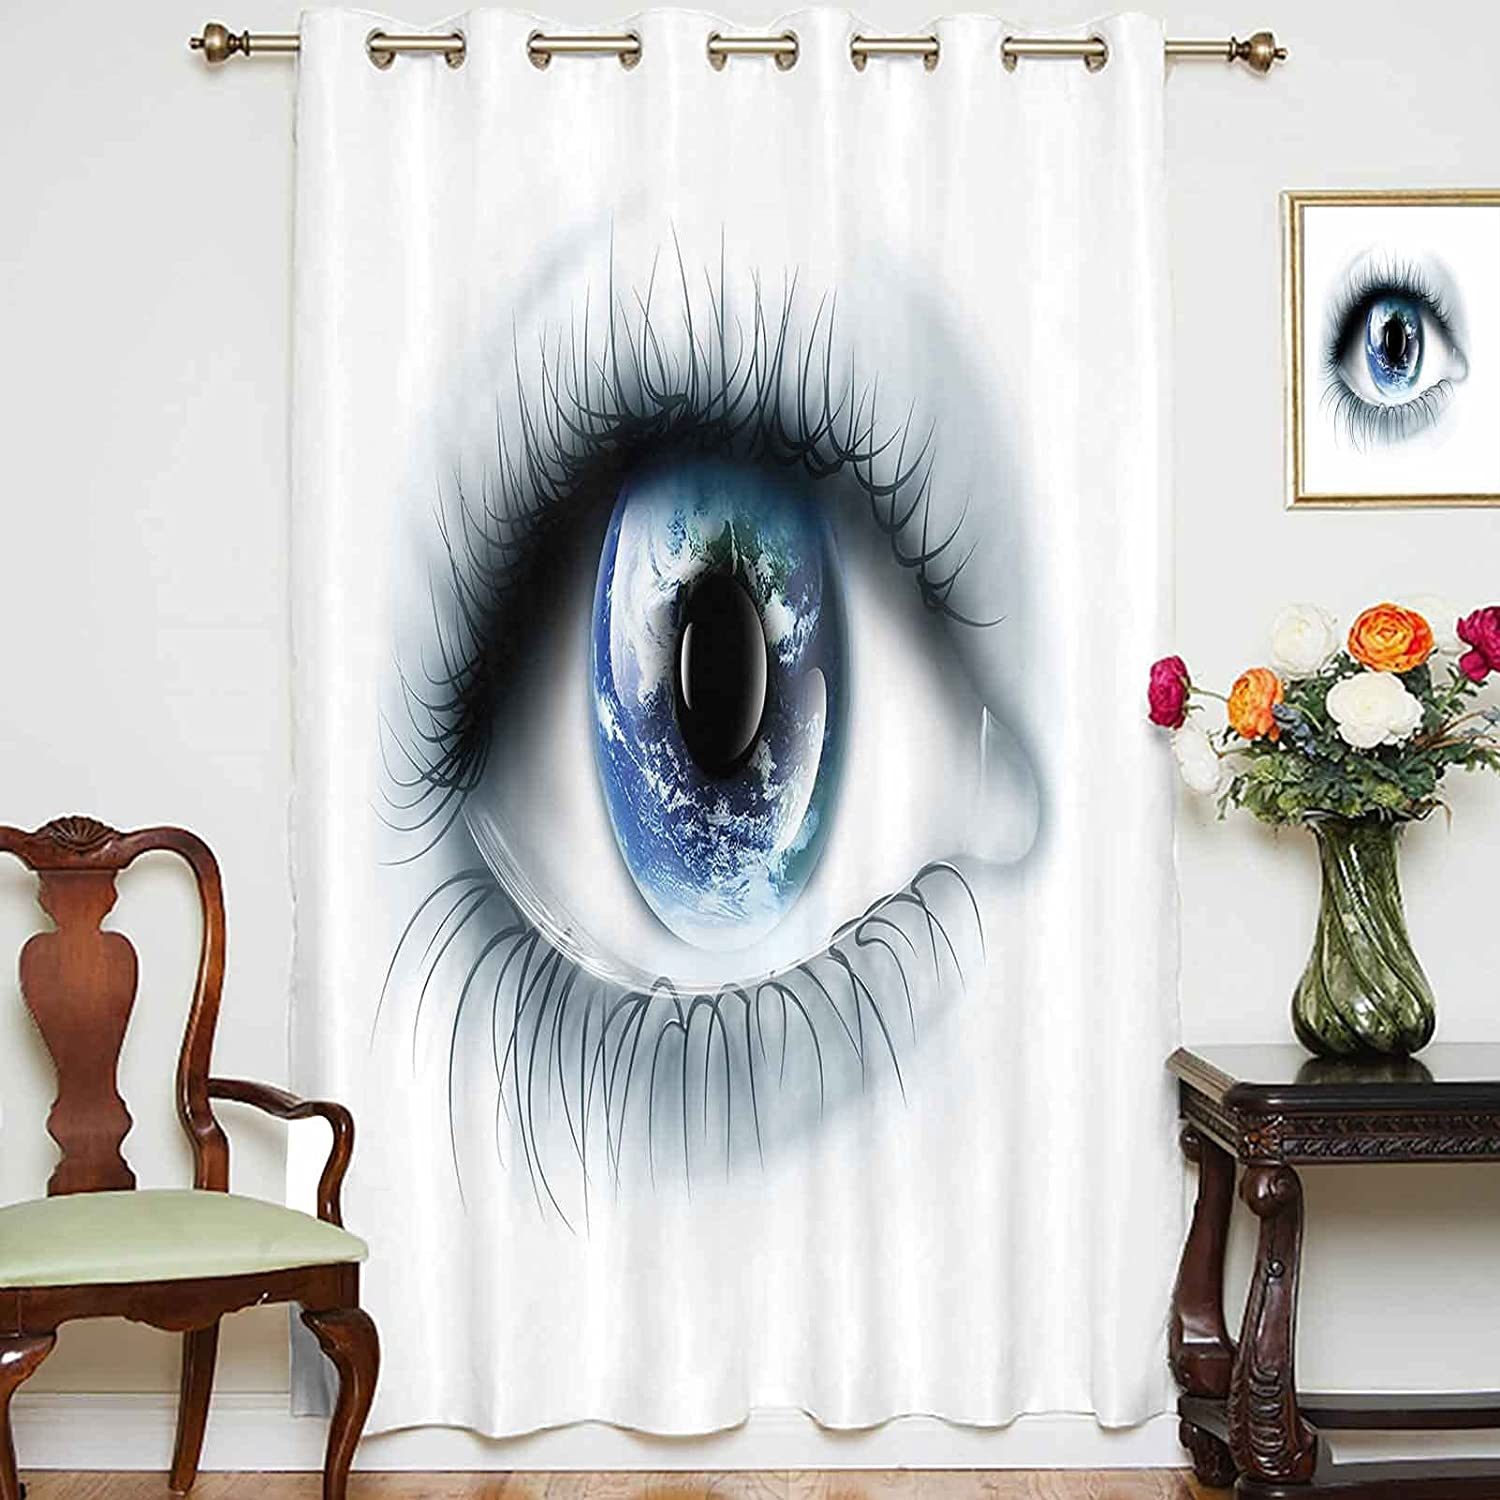 Blackout Curtains Panels Max 71% OFF In a popularity Planet Earth Reflected Eye Uni in Vivid